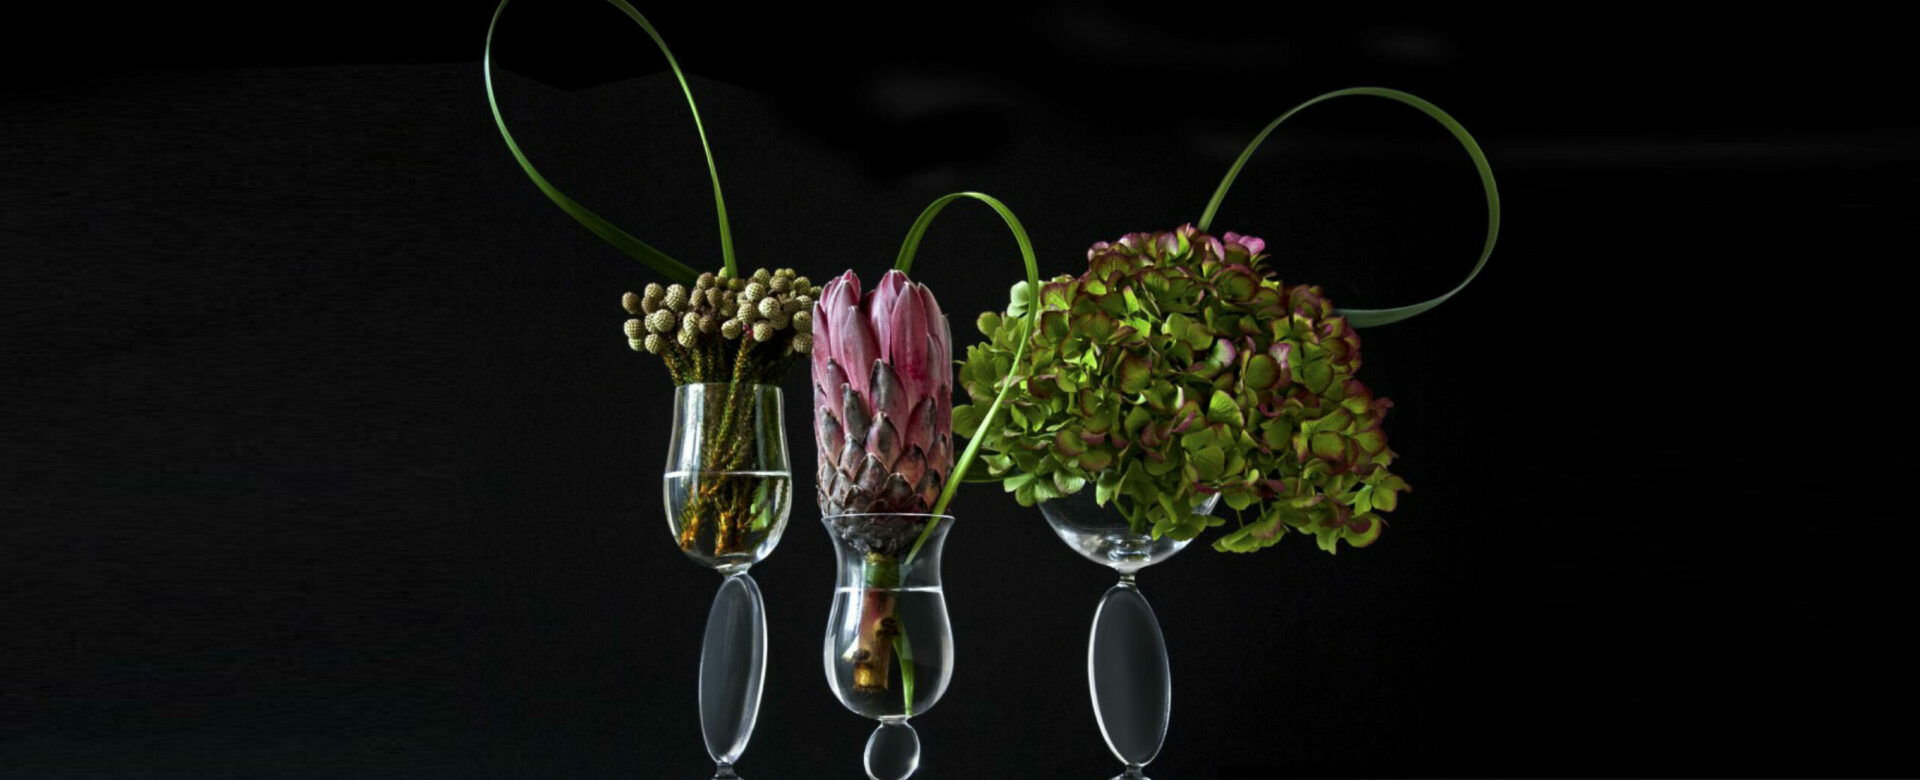 A collection of glasses creating small towers of balance decorated by hydrangeas, leaves and exotic flowers in a black background.